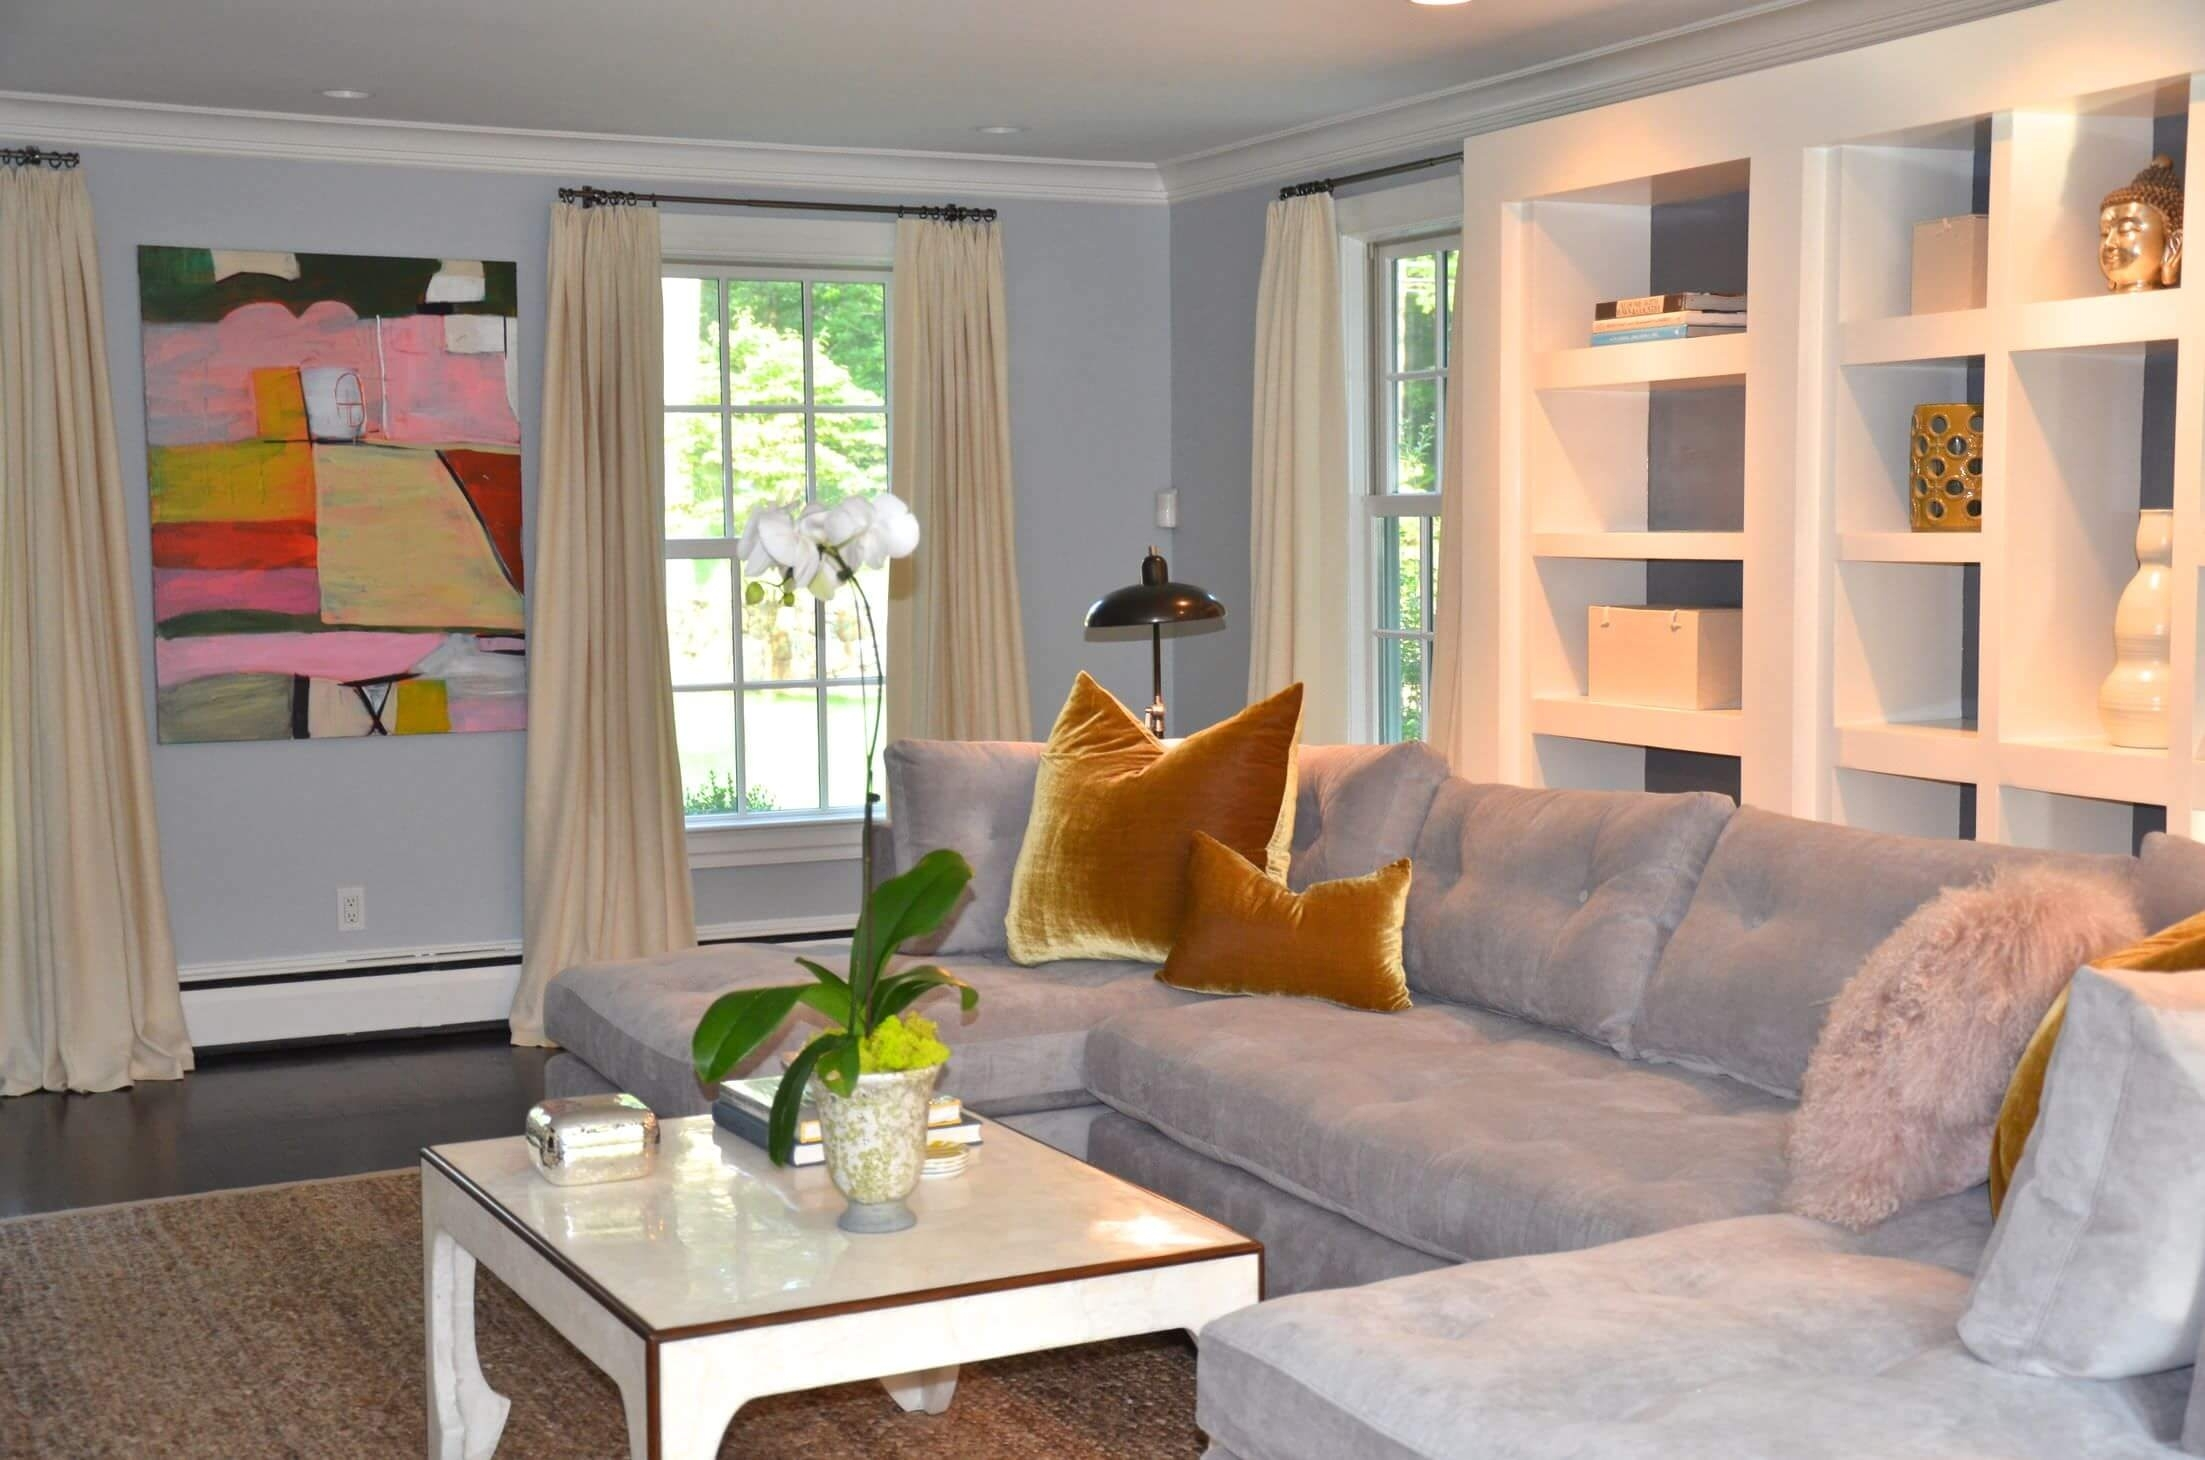 Best Living Room Colors For 2018 Regarding Latest Wall Accents Color Combinations (View 10 of 15)